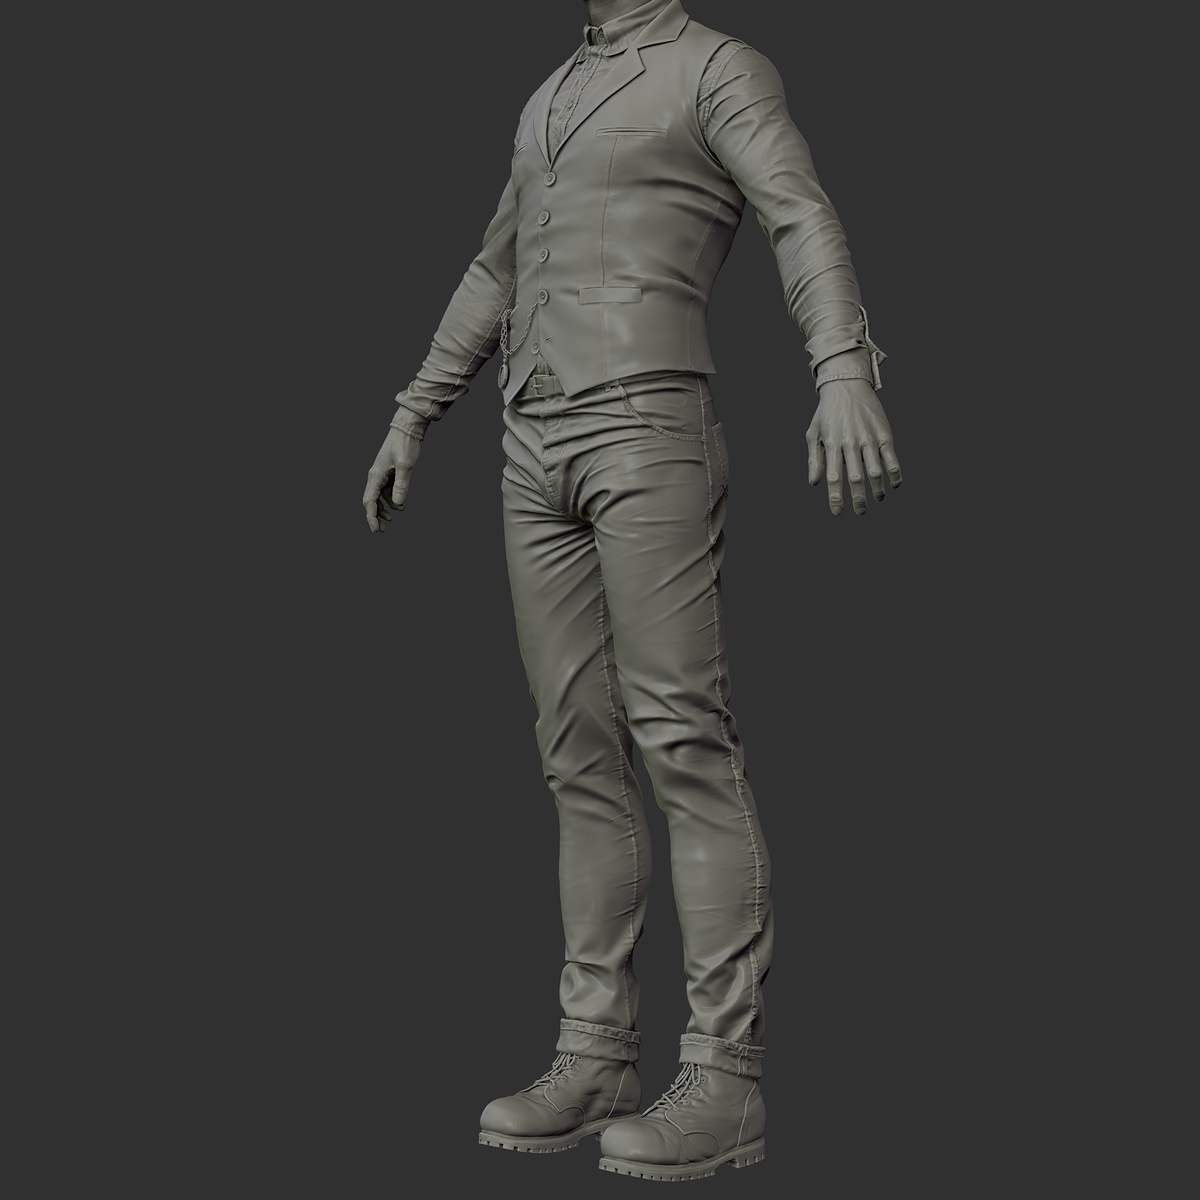 ZBrush Document07